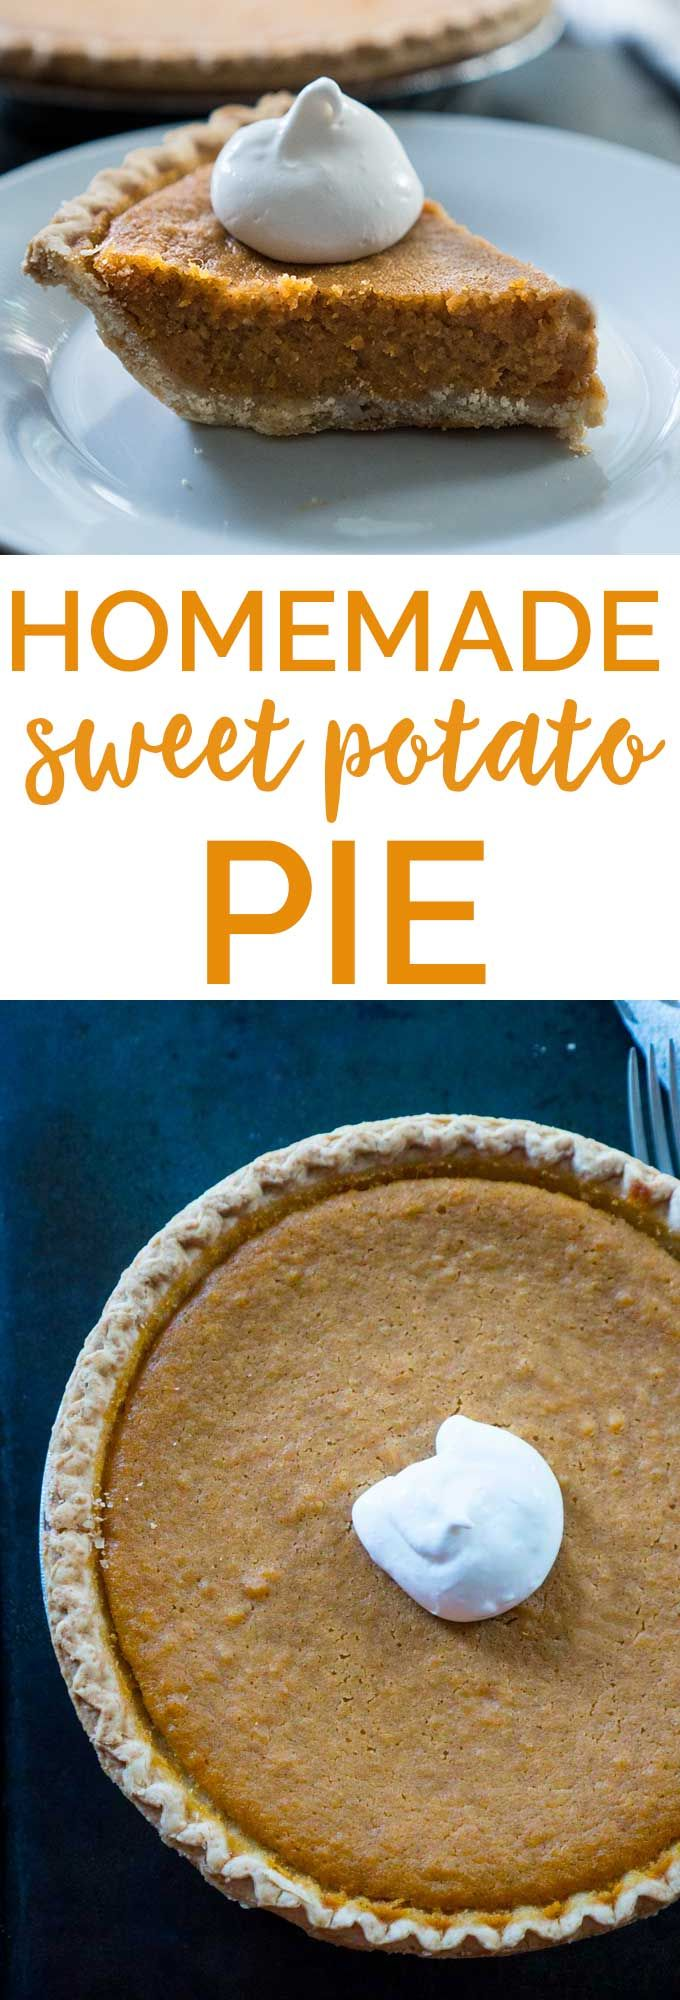 Homemade Sweet Potato Pie is easier than you think! This classic Southern dessert recipe is perfect for the holidays! #recipe #pie #dessert